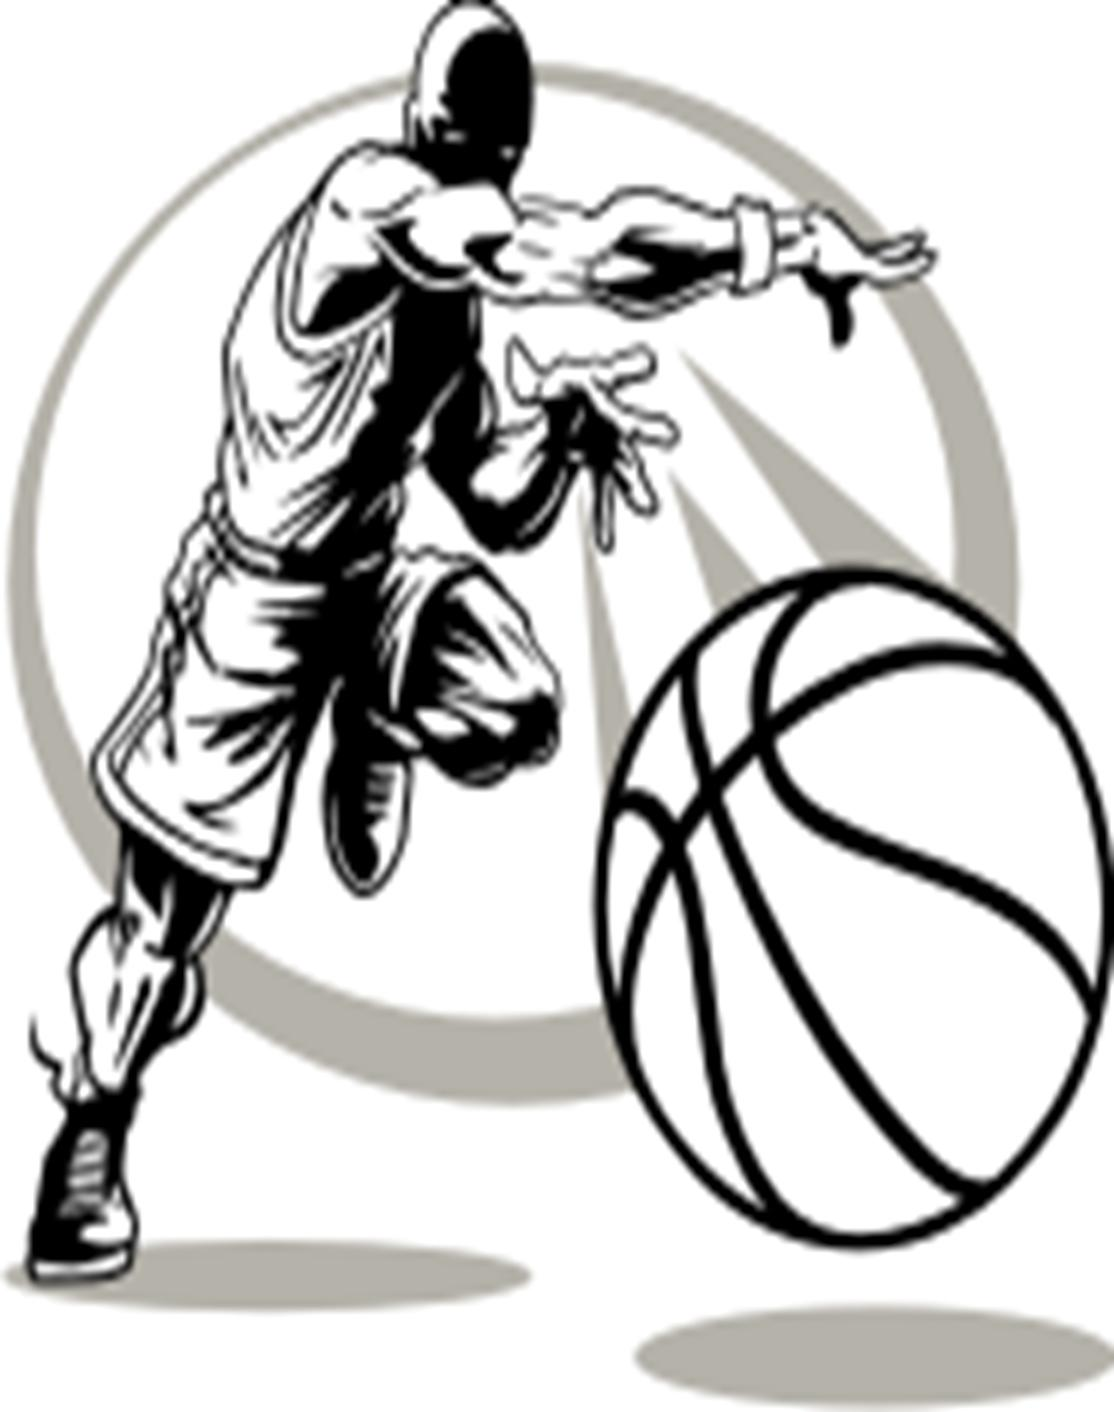 Kid Basketball Player Clipart   Clipart Panda   Free Clipart Images